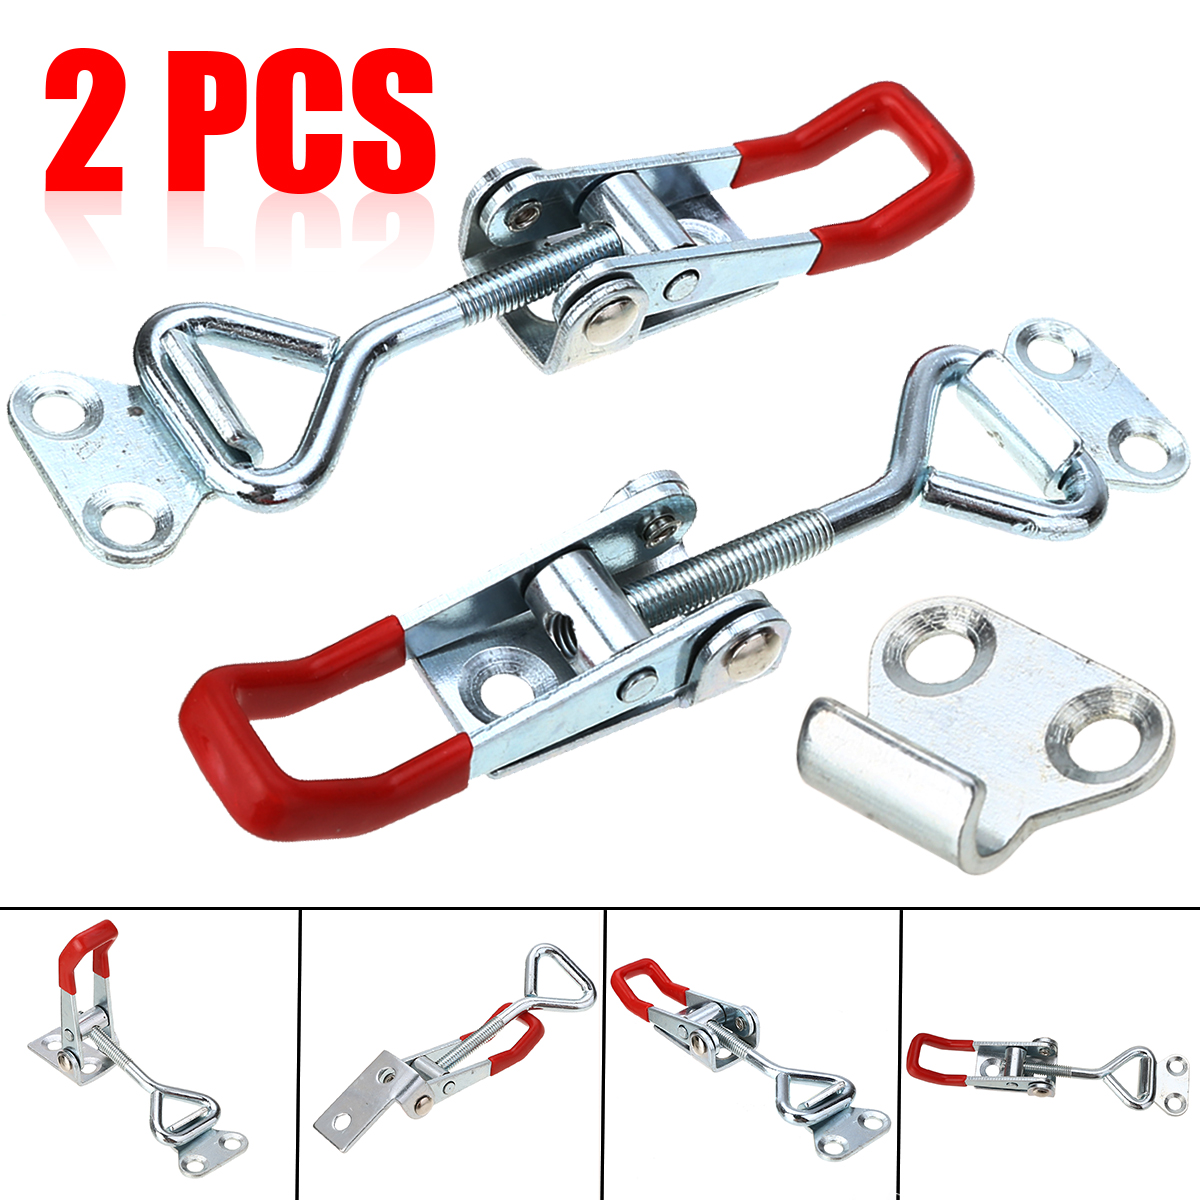 2pcs Toggle Catch Latch Clamp Cabinet Boxes Lever Handle Hasp Adjustable Metal Clasp Length Furniture Hardware Silver+Red